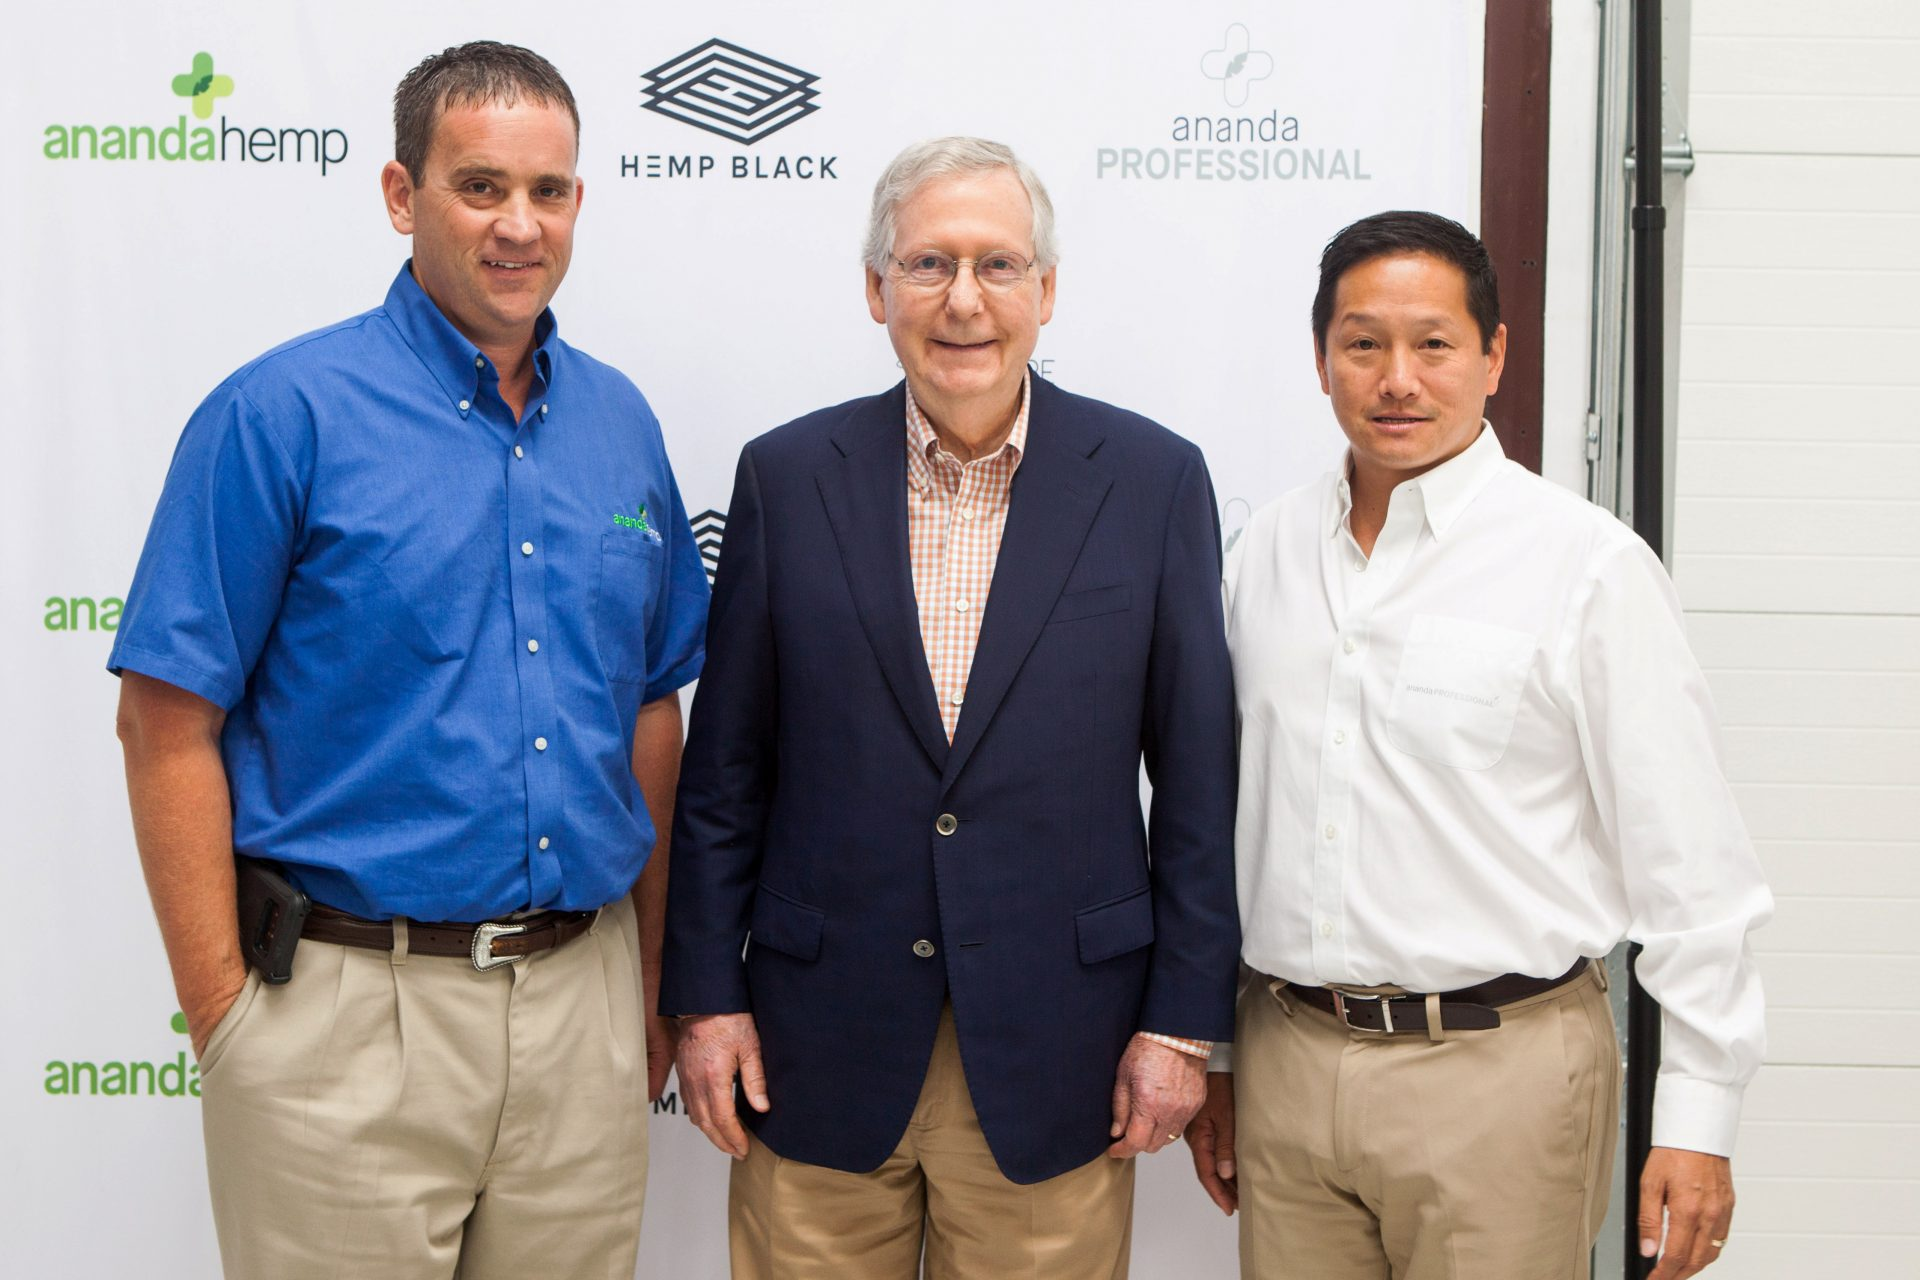 Senator McConnell Visits the Ananda Hemp Farm – Ecofibre